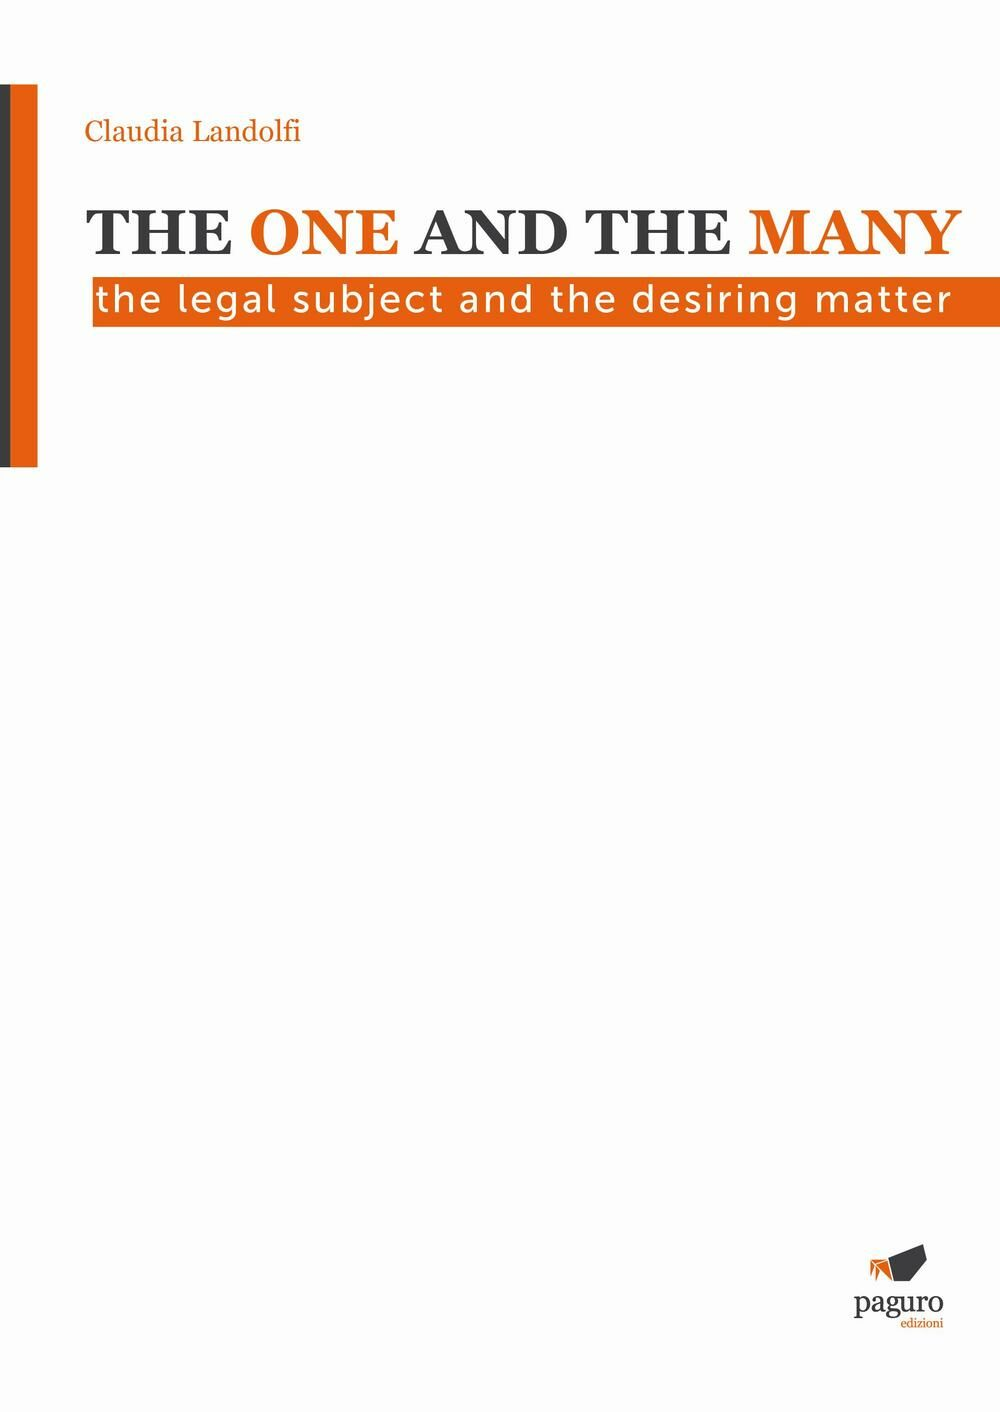 The one and the many. The legal subjet and the desiring matter